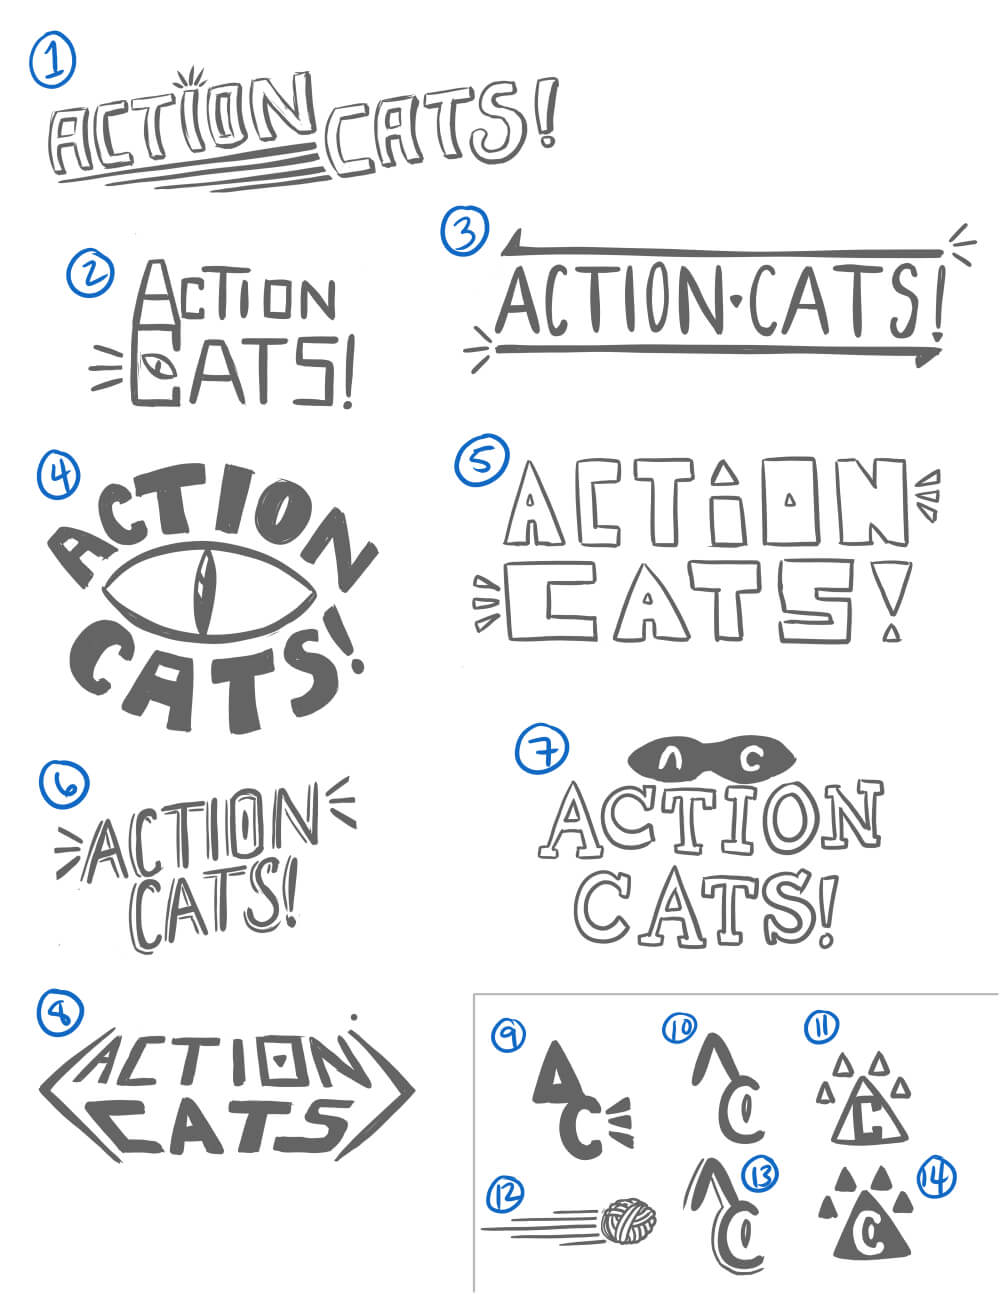 Action Cats logo sketches - v1